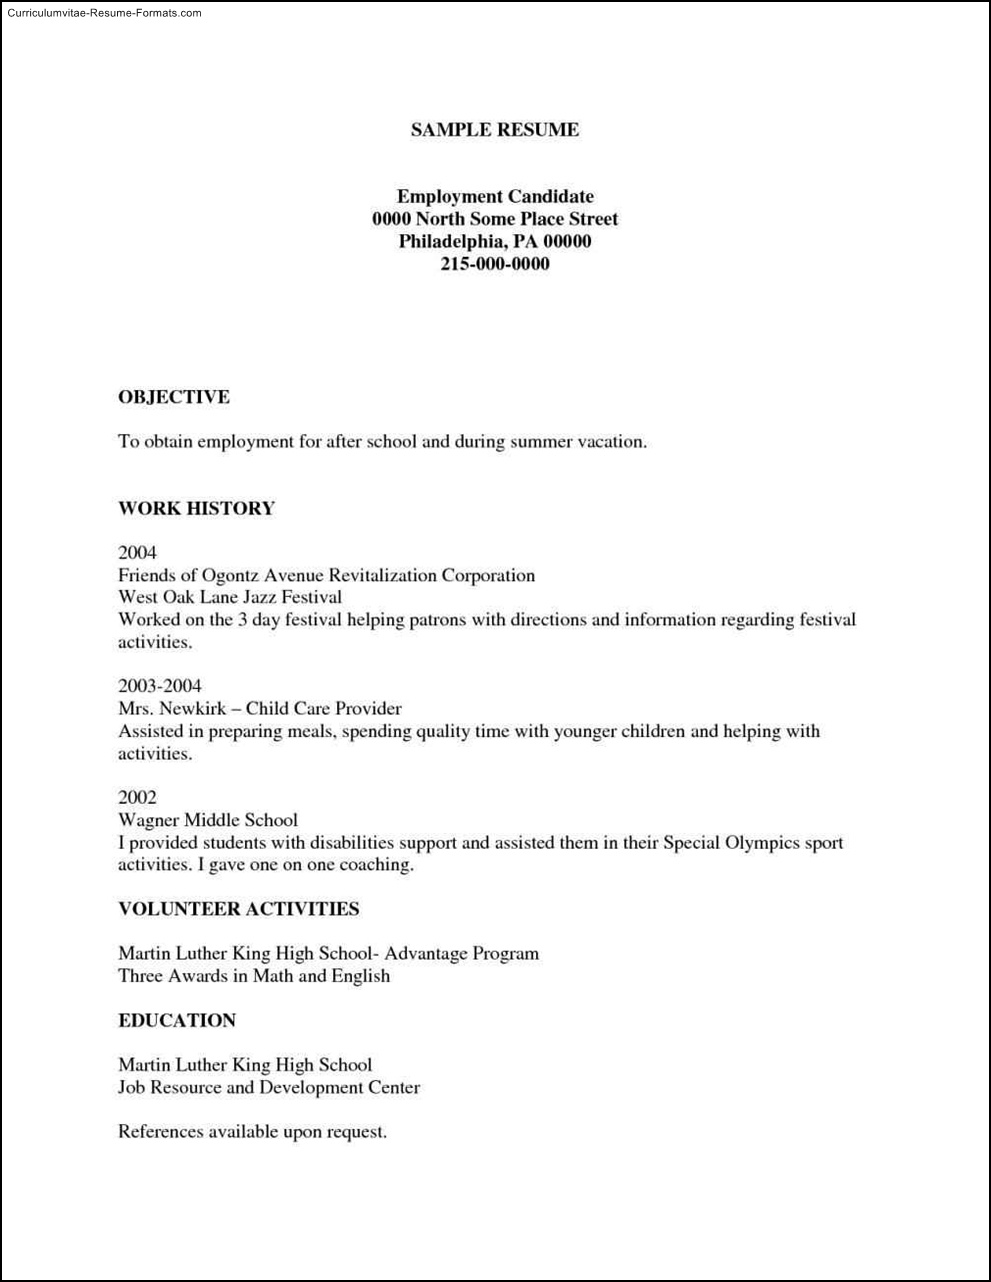 free printable resume templates ipasphoto basic examples inspirational resumes samples Resume Printable Basic Resume Examples